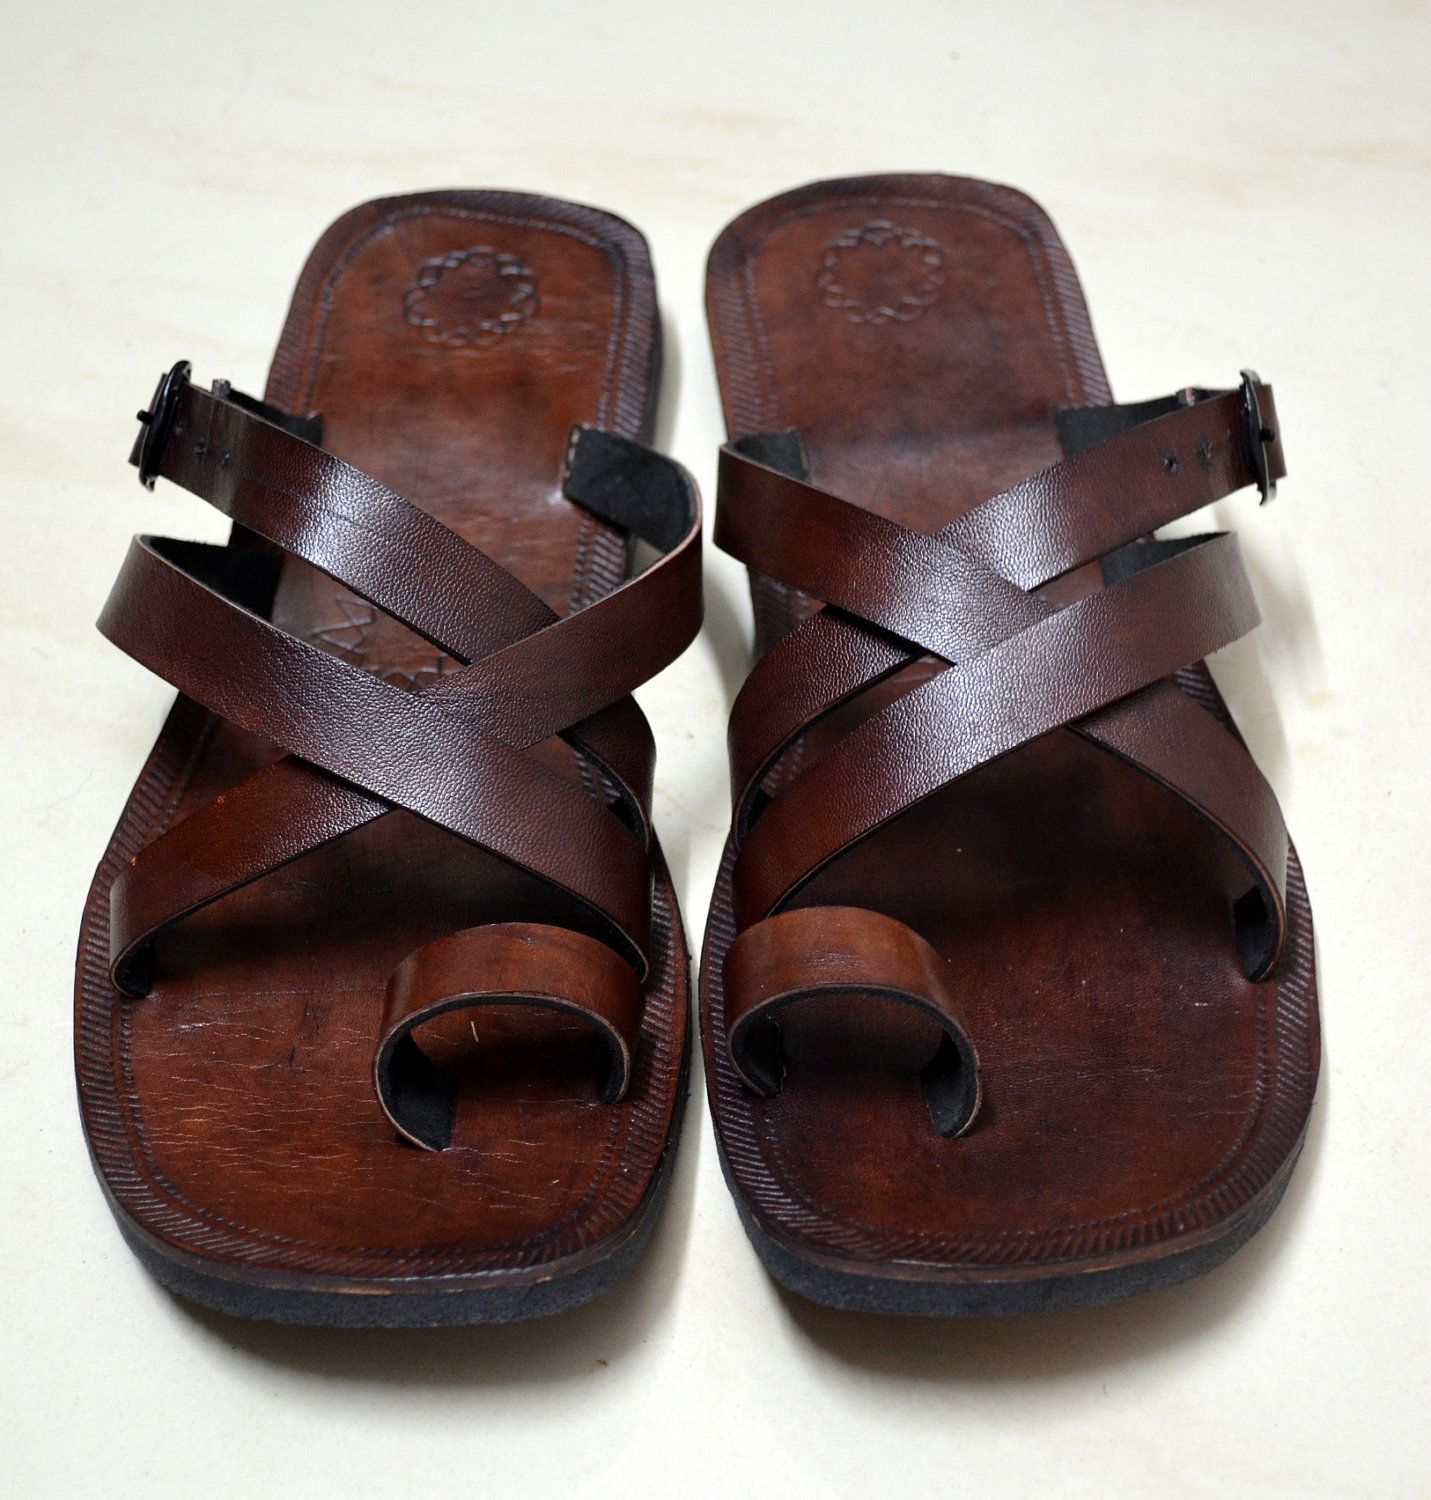 Women's sandals that hide bunions - Buckle Leather Sandalshandmade Sandals Indian By Incredibleindia